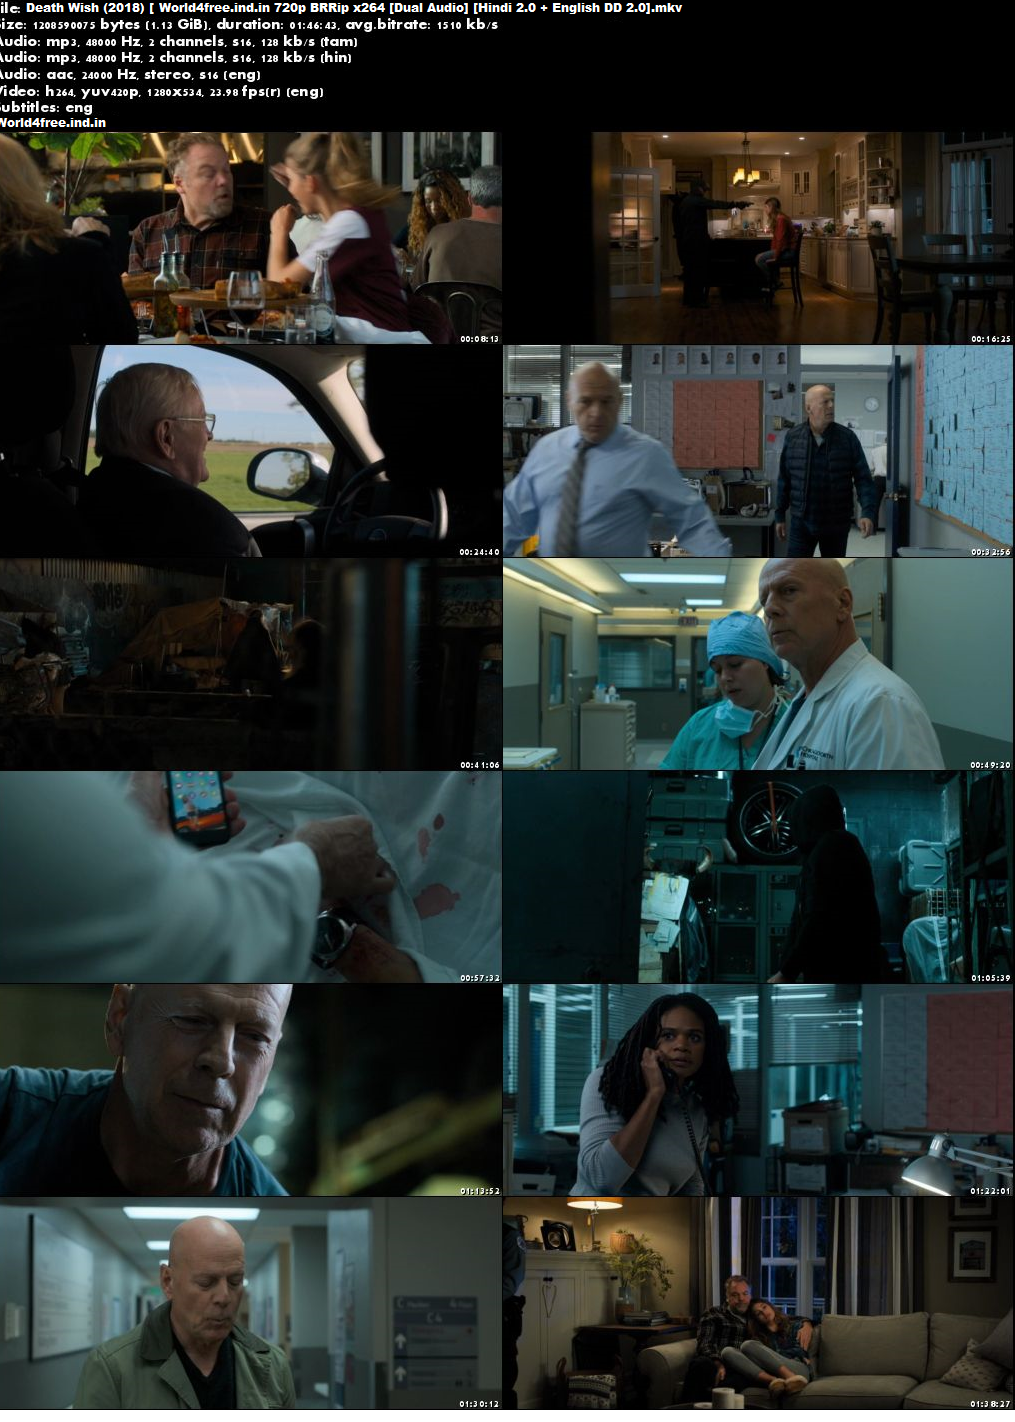 Death Wish 2018 worldfree4u Full Dual Audio Movie BRRip 720p Download